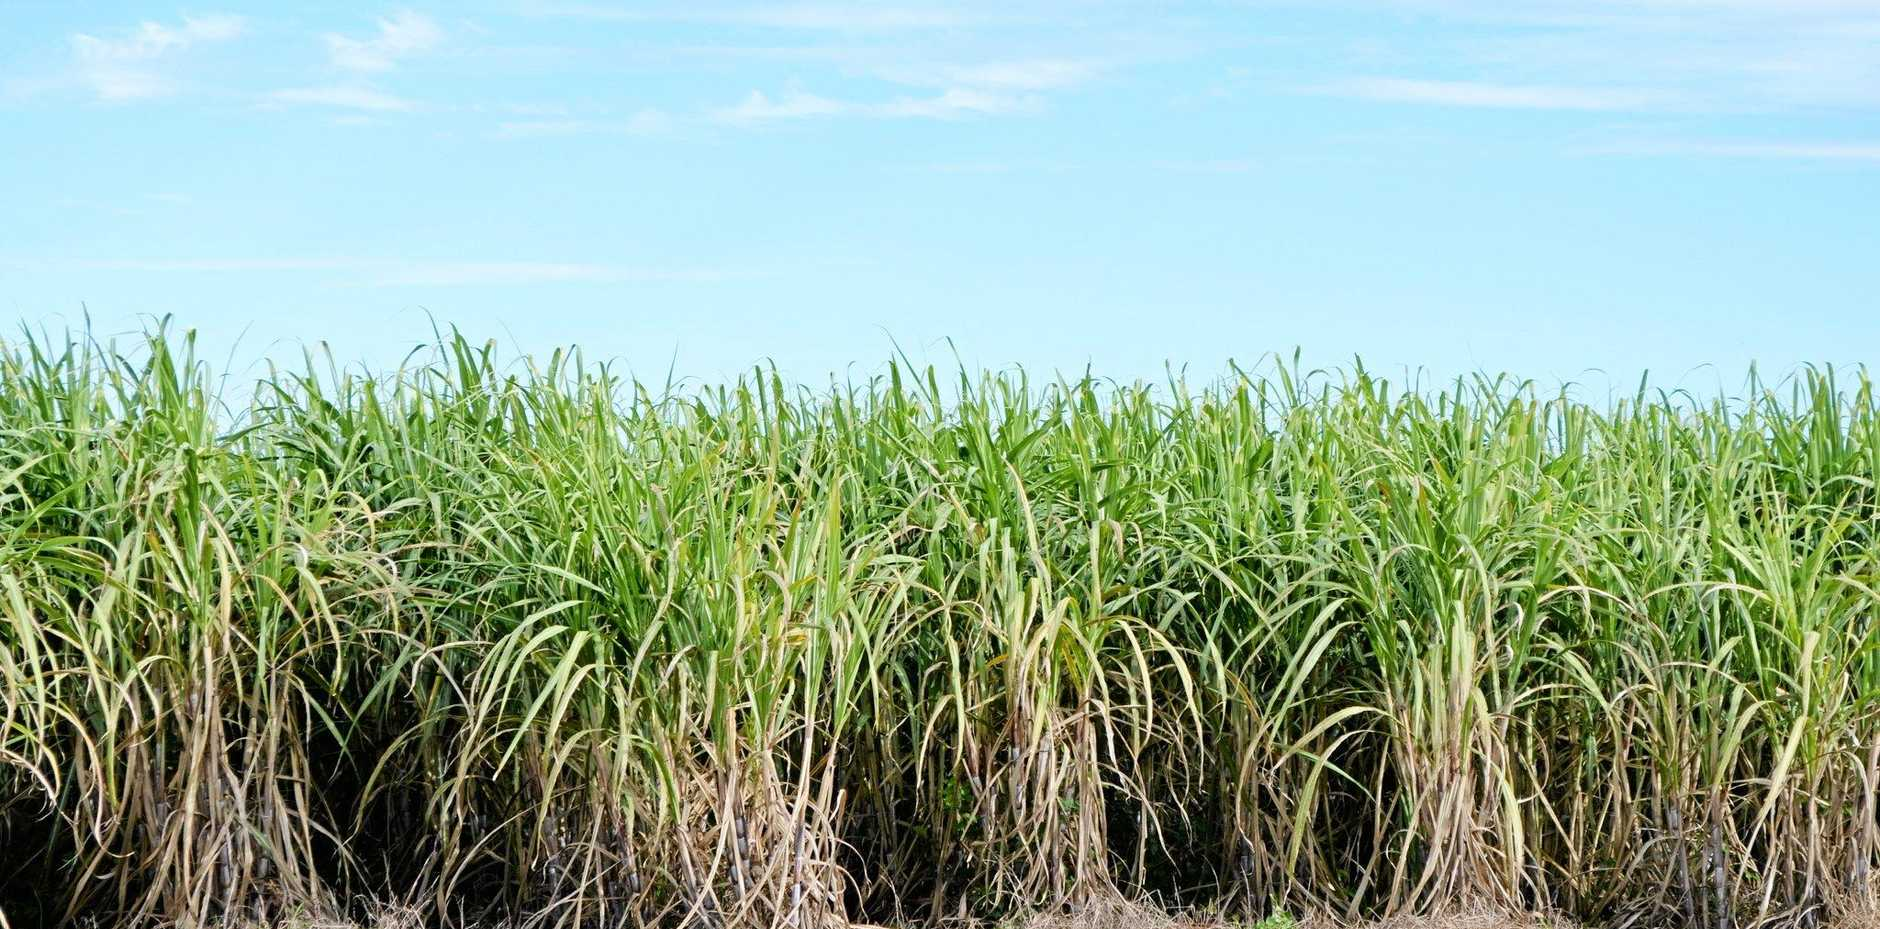 Innovation is being rewarded in the sugarcane industry.